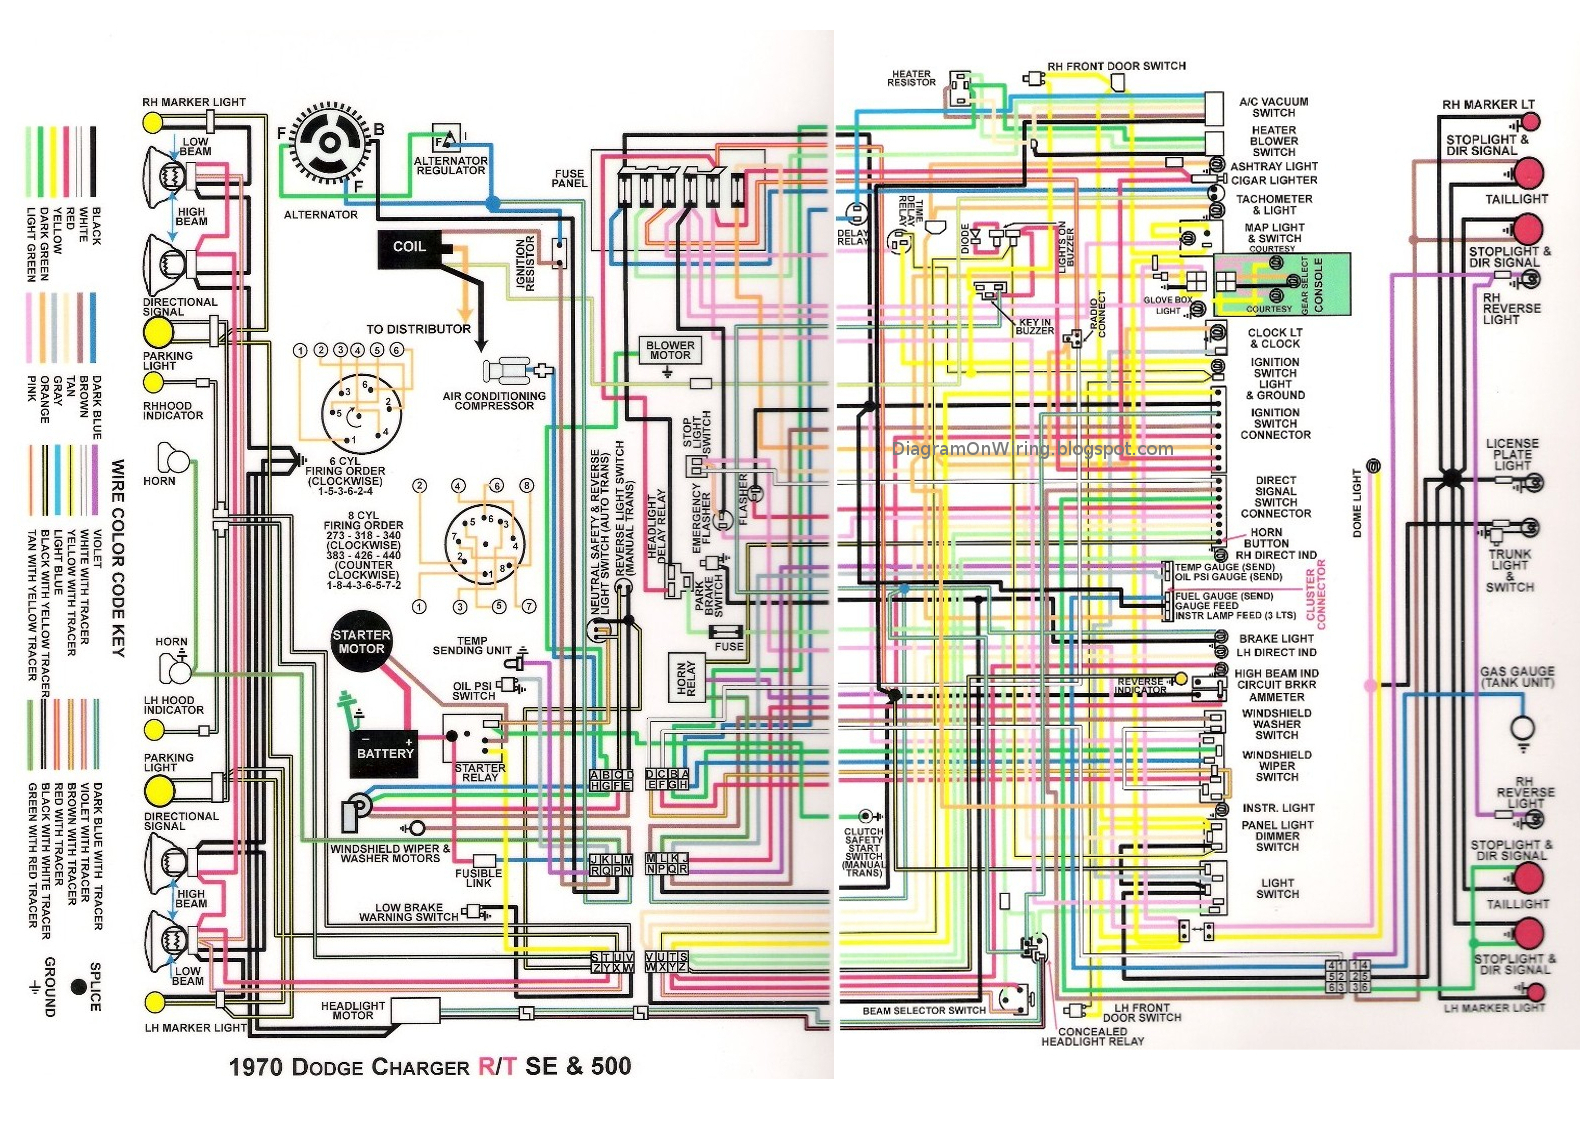 Complete Wiring Diagram for 1970 Dodge Charger RT SE and 50 1970 chevrolet wiring diagram readingrat net  at bakdesigns.co